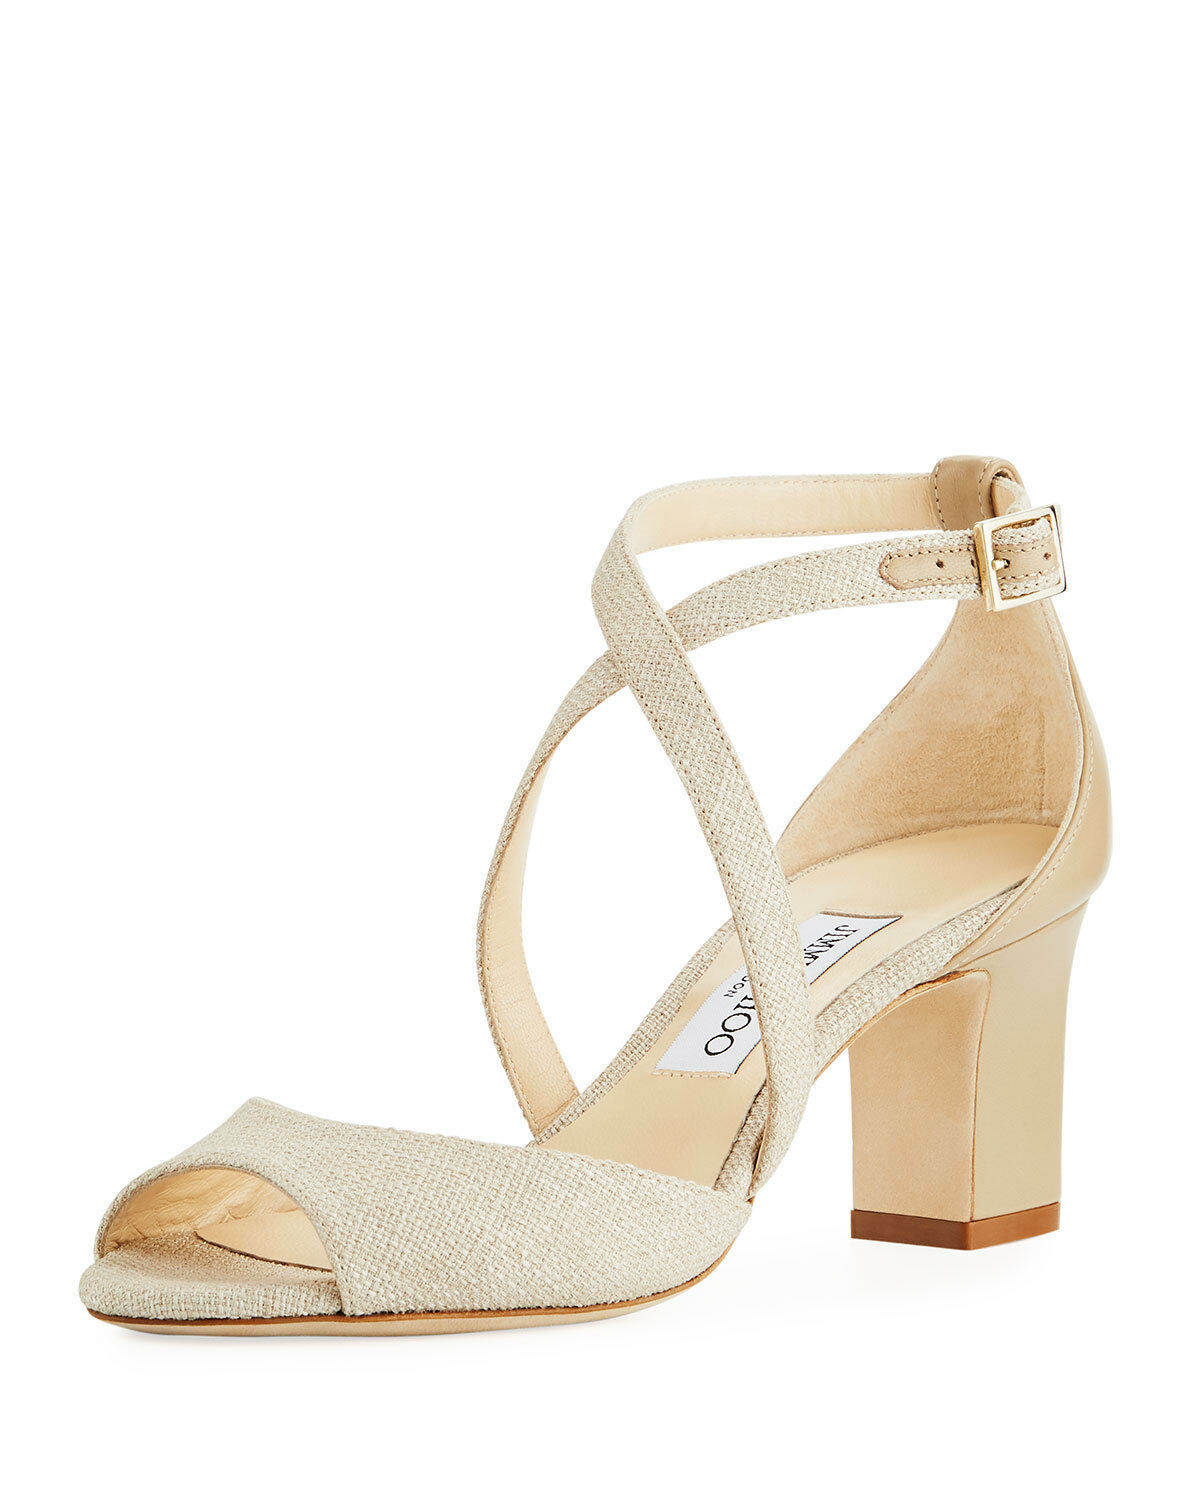 Primary image for Jimmy Choo Carrie Canvas 65mm Sandals  $695.00 Size 36